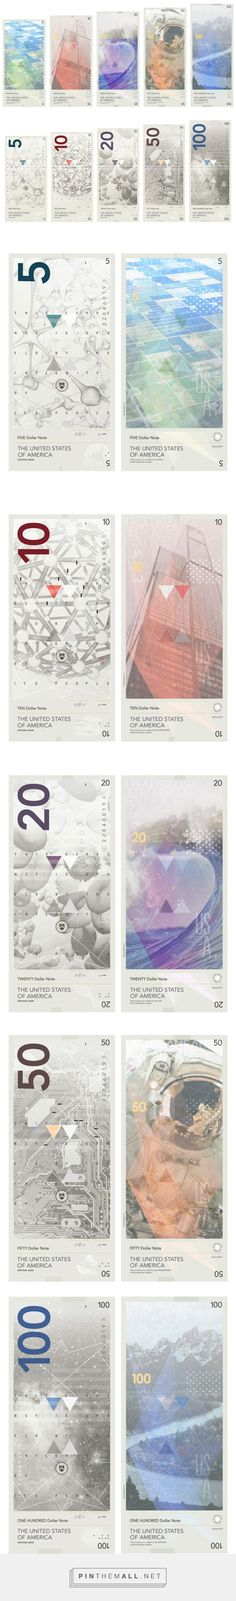 The Proposal to Redesign the Dollar That's Weirdly Blowing Up the Internet